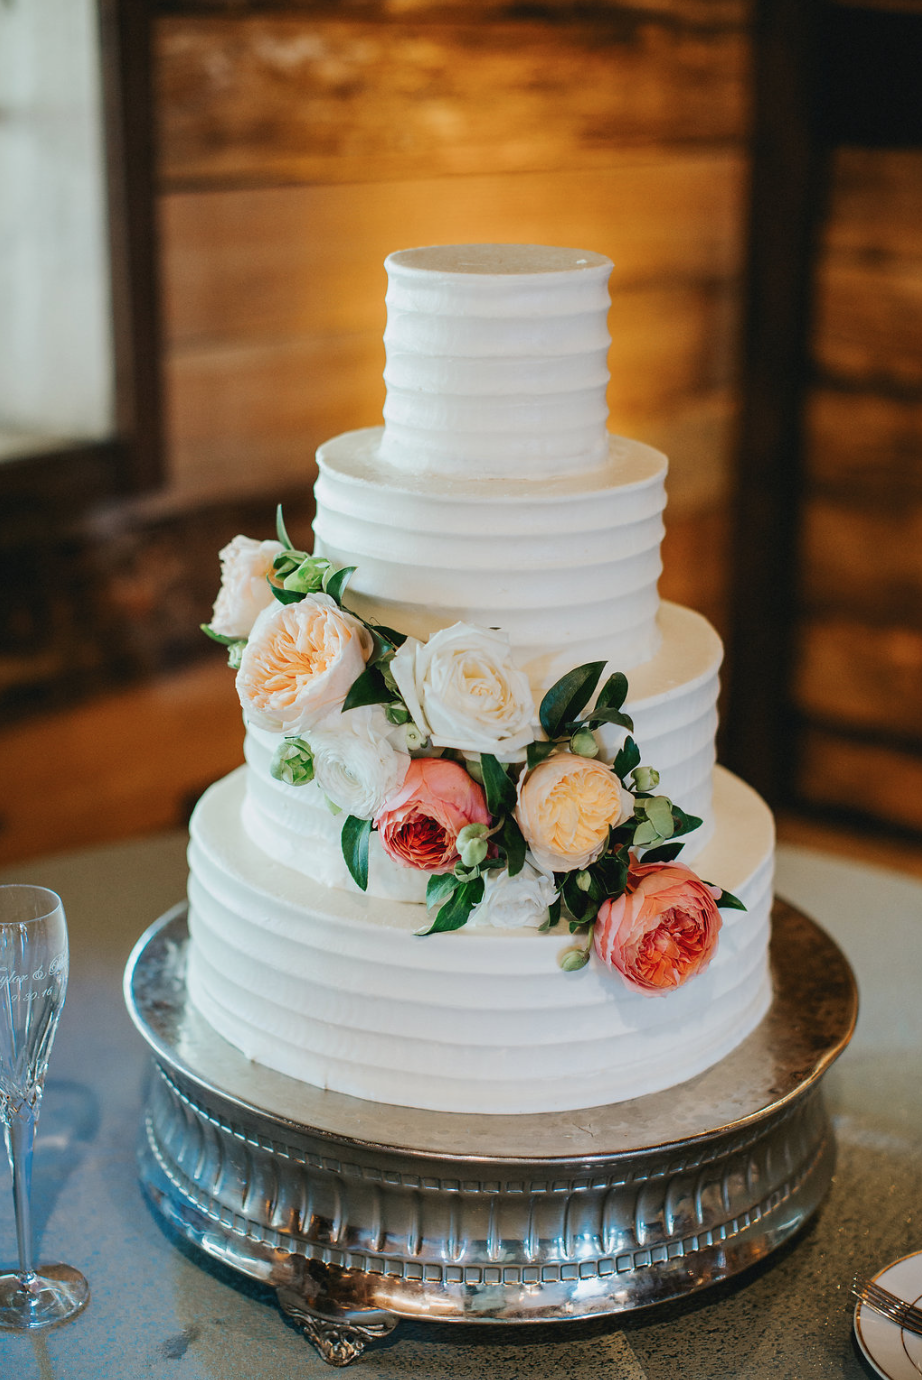 Simple cake with floral accents provided by Maxit Flower Design